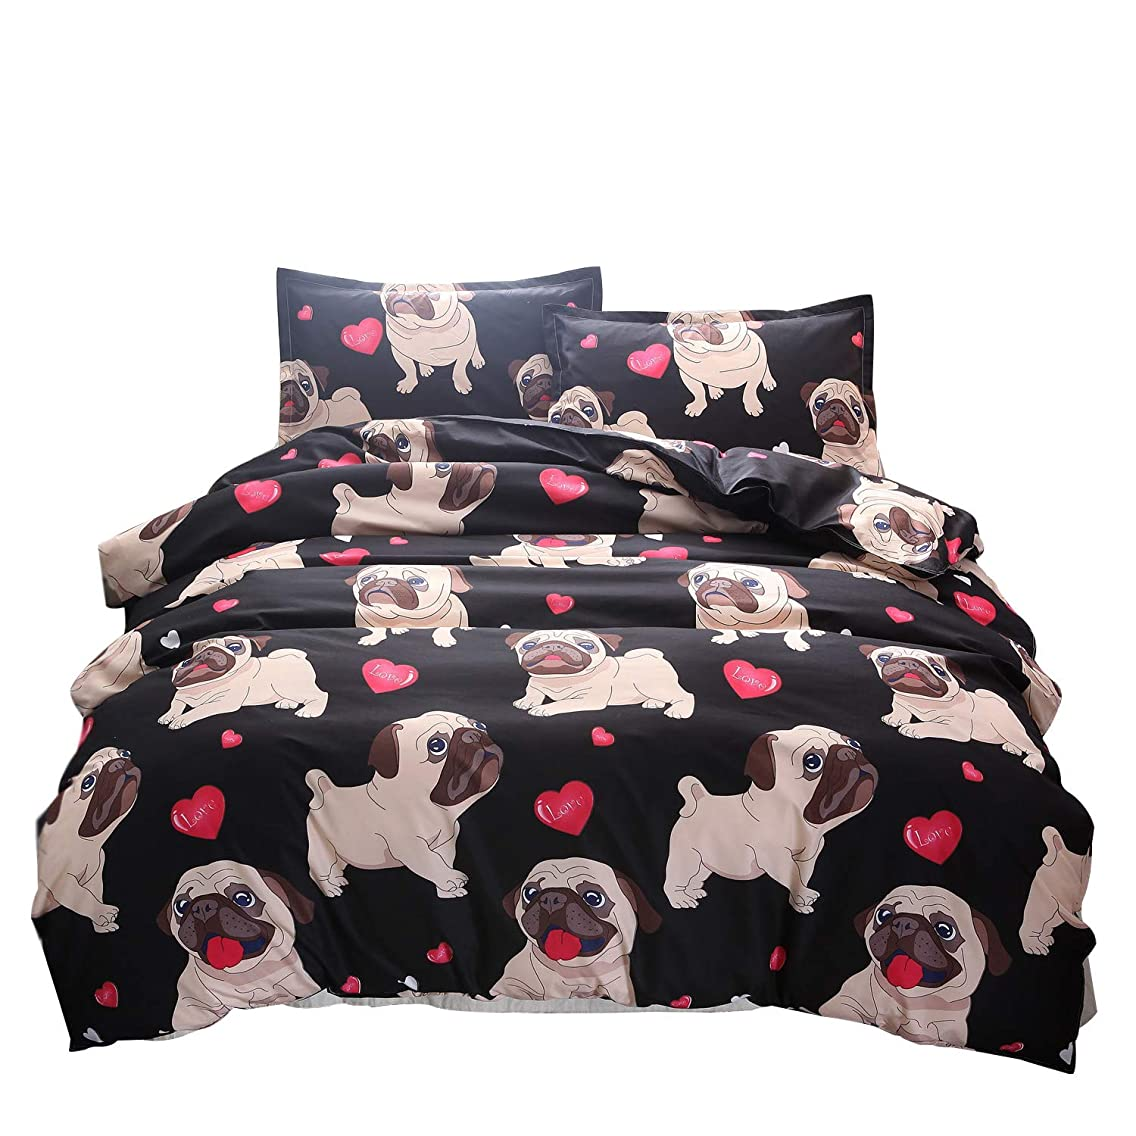 YOUSA Reversible Children Bedding Sets for Girls Boys Teens Animal Cartoon Bulldog Duvet Cover Set (Full,Dog)